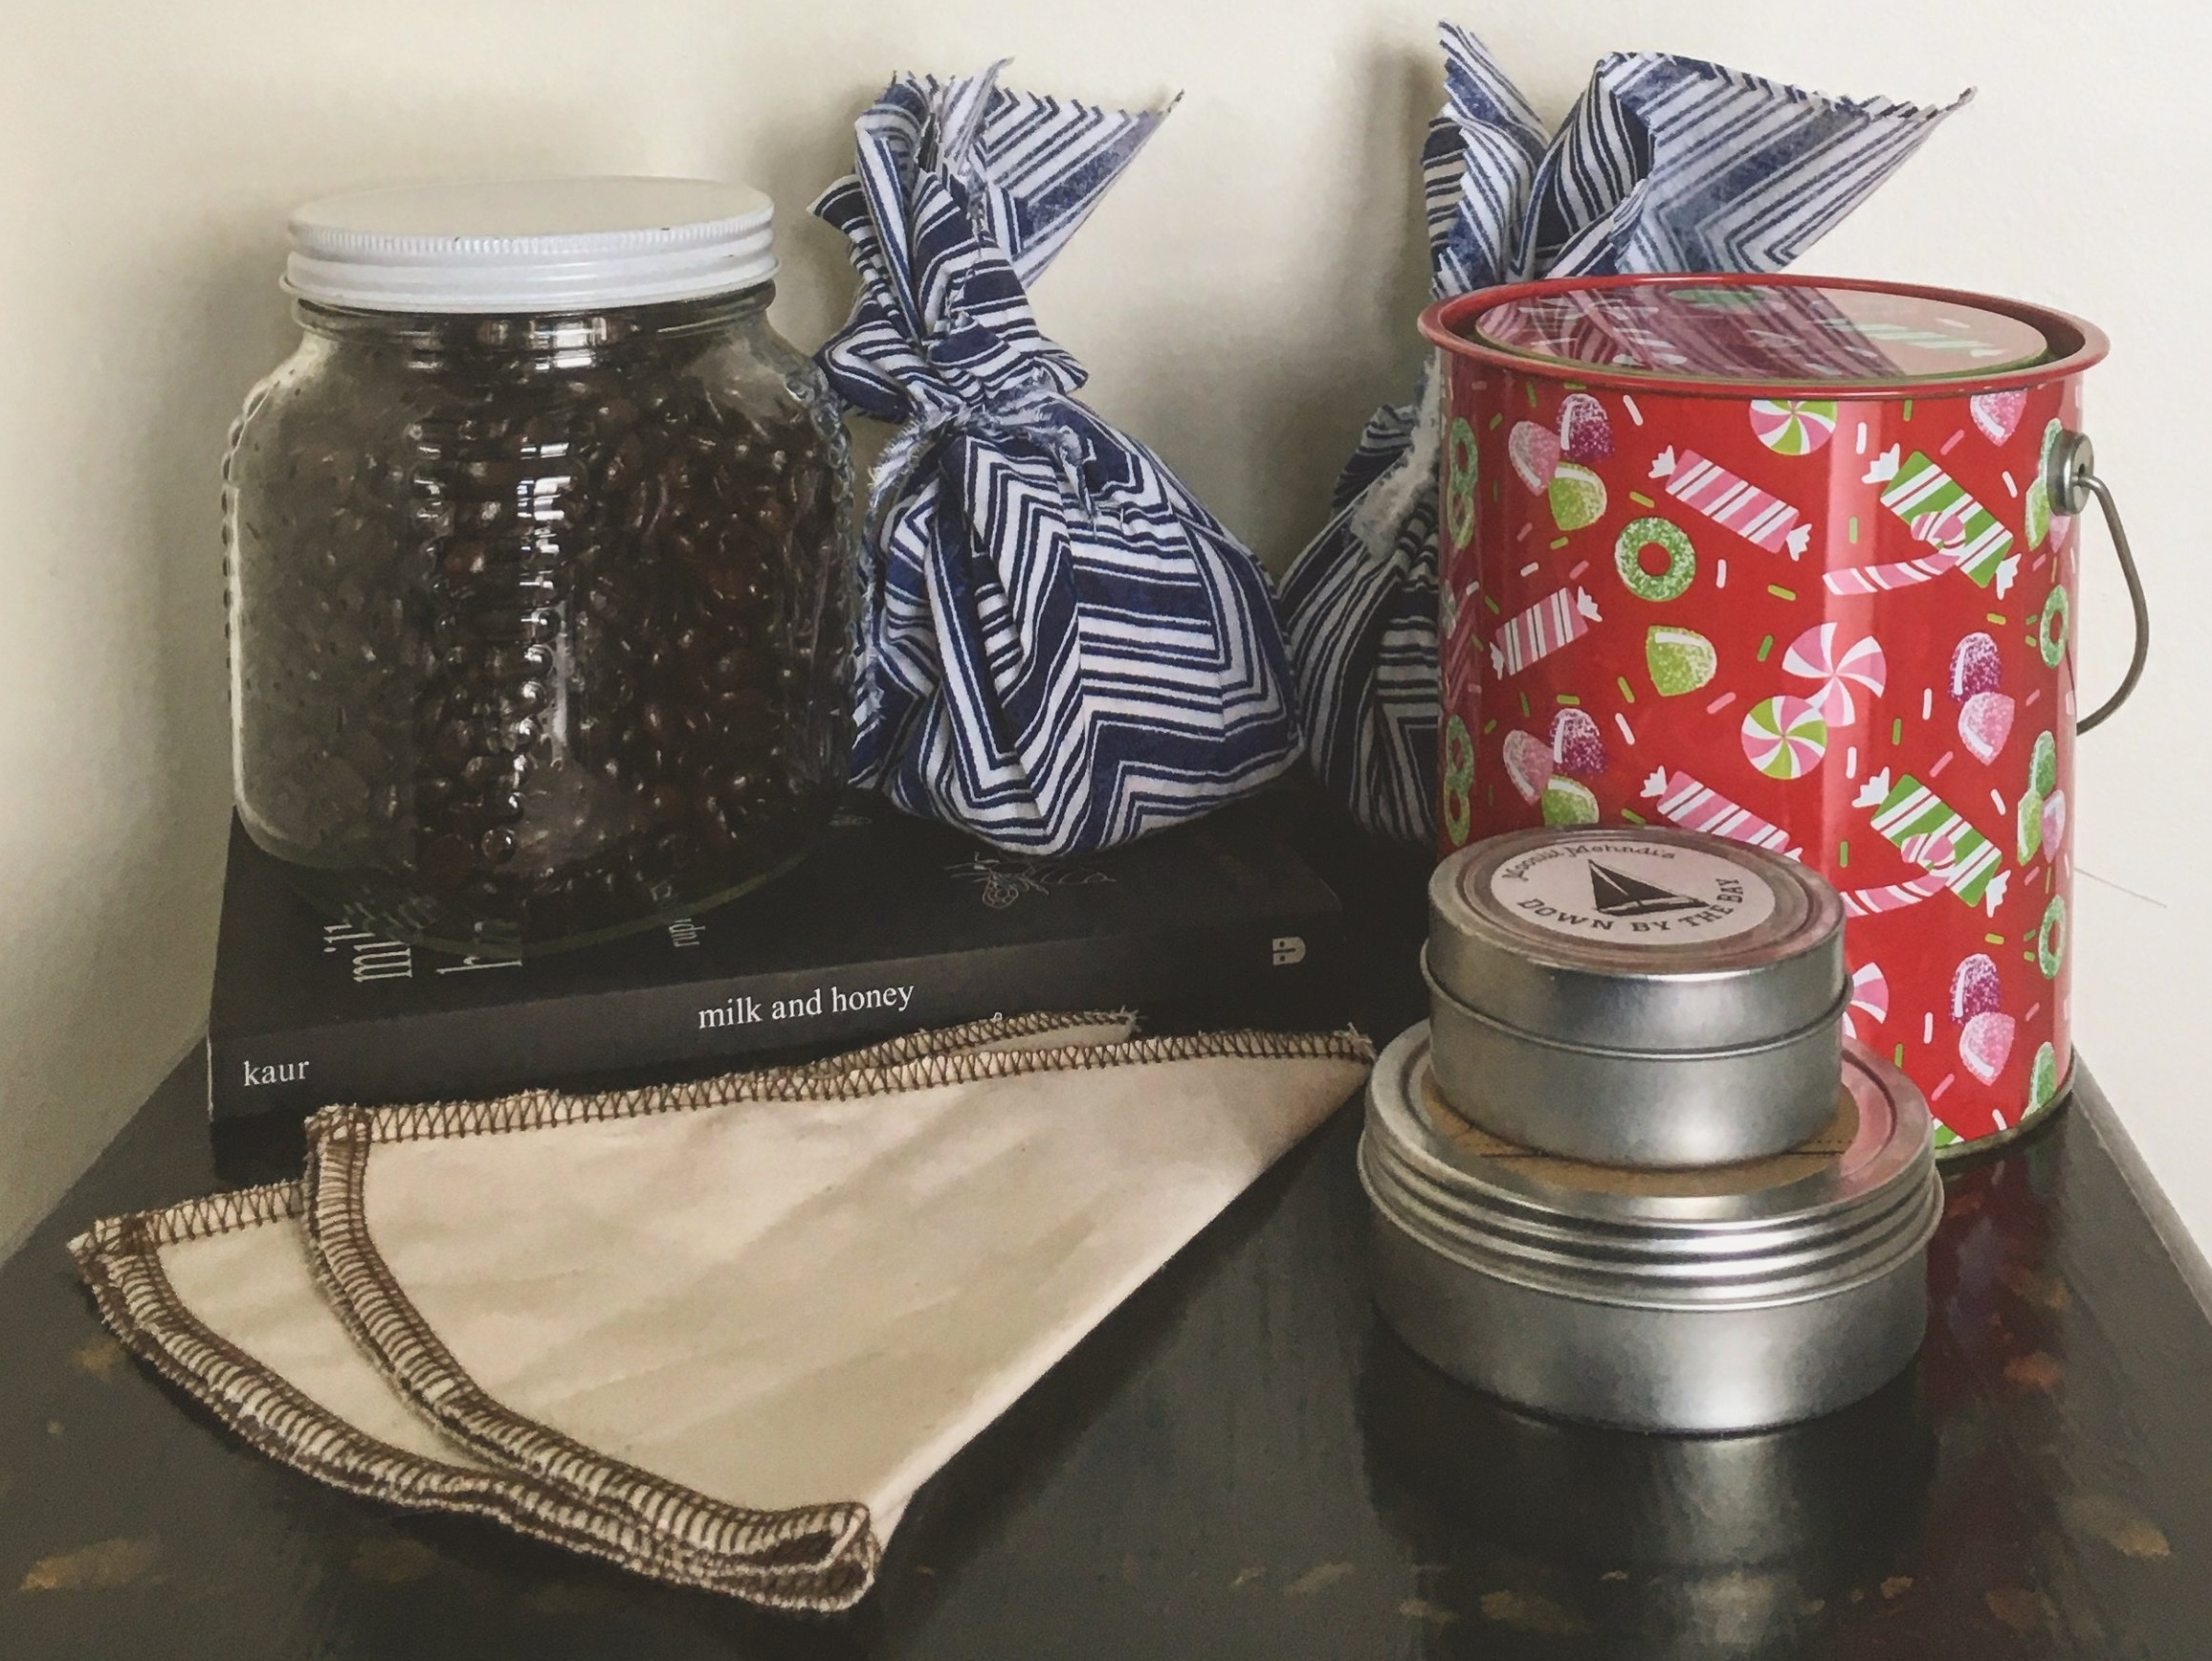 Zero waste gifts I received last Christmas: package free coffee, cloth wrapped bath bombs, locally made lotion bars, a used book, and reusable Coffee Sock coffee filters